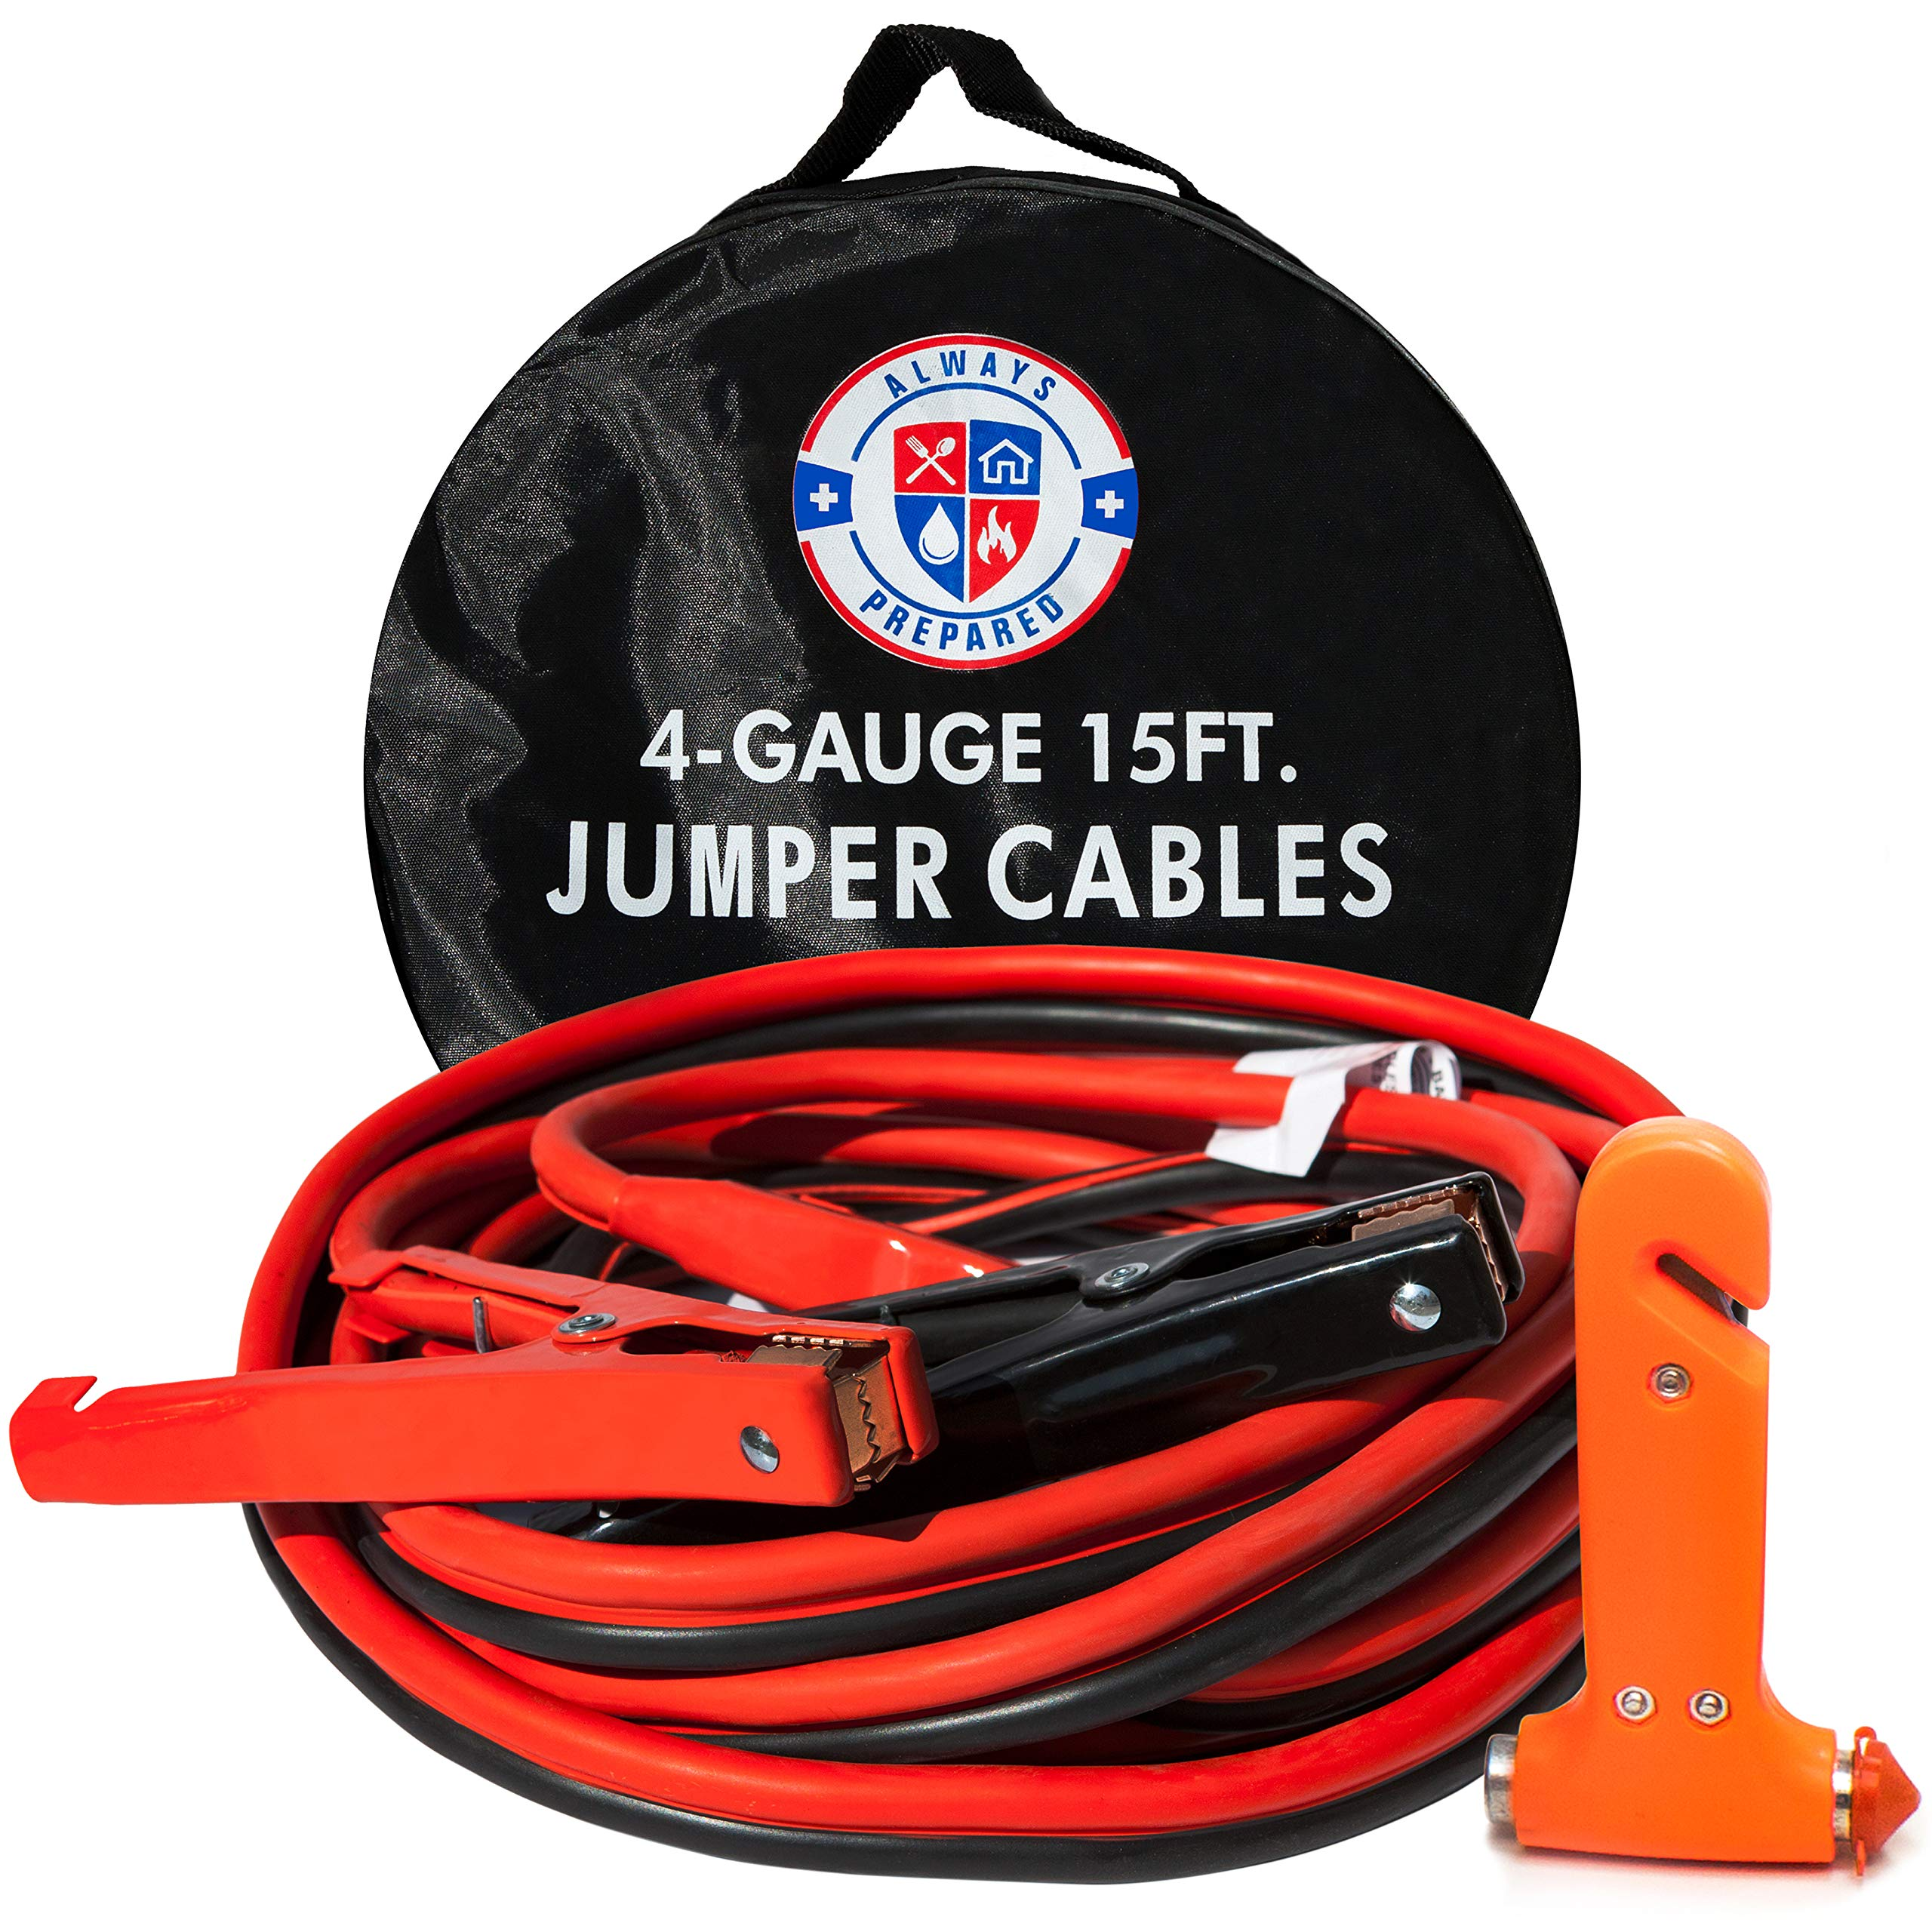 33742a676b3 15ft 4 Gauge Jumper Cables with Storage Case – Insulated Heavy Duty Jumper  Cables & Roadside